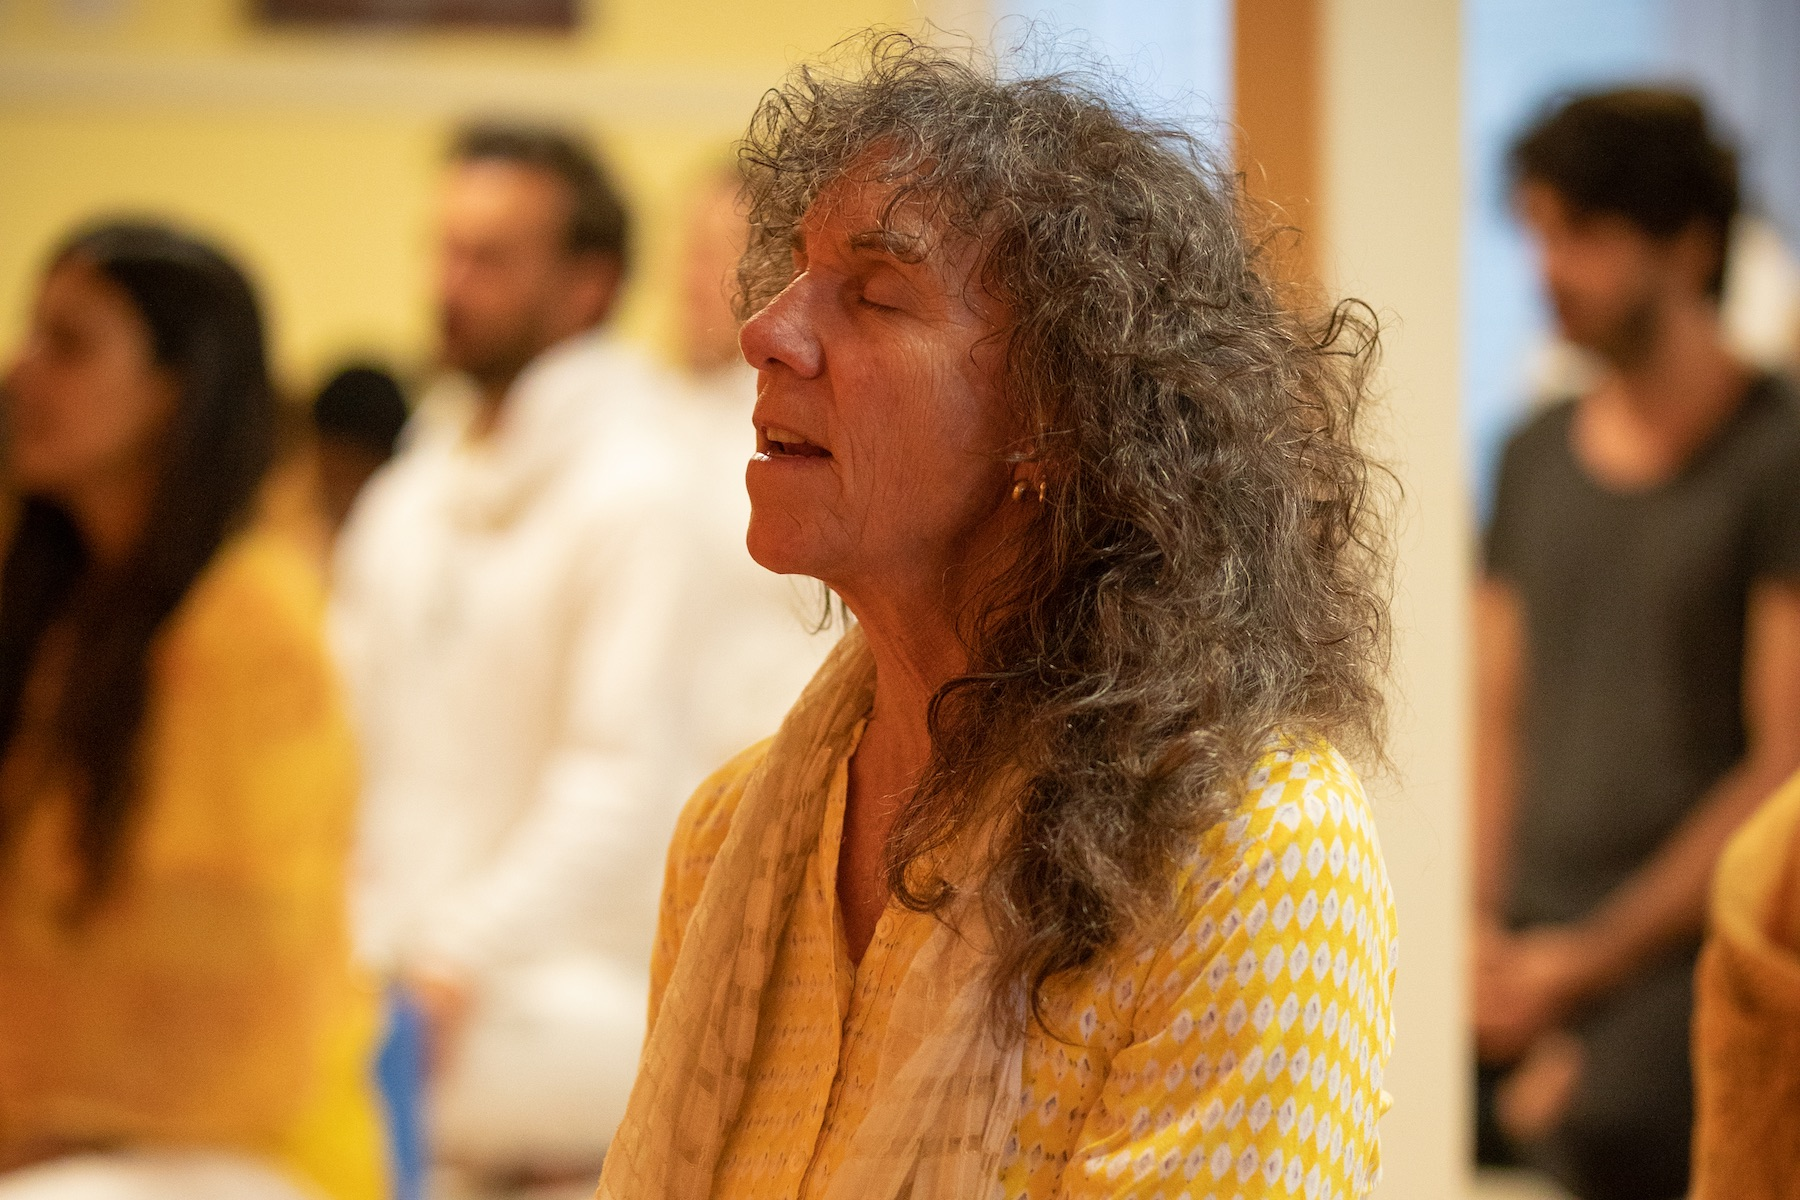 The Yoga of Devotion and Knowledge at the Sivananda Yoga Ranch